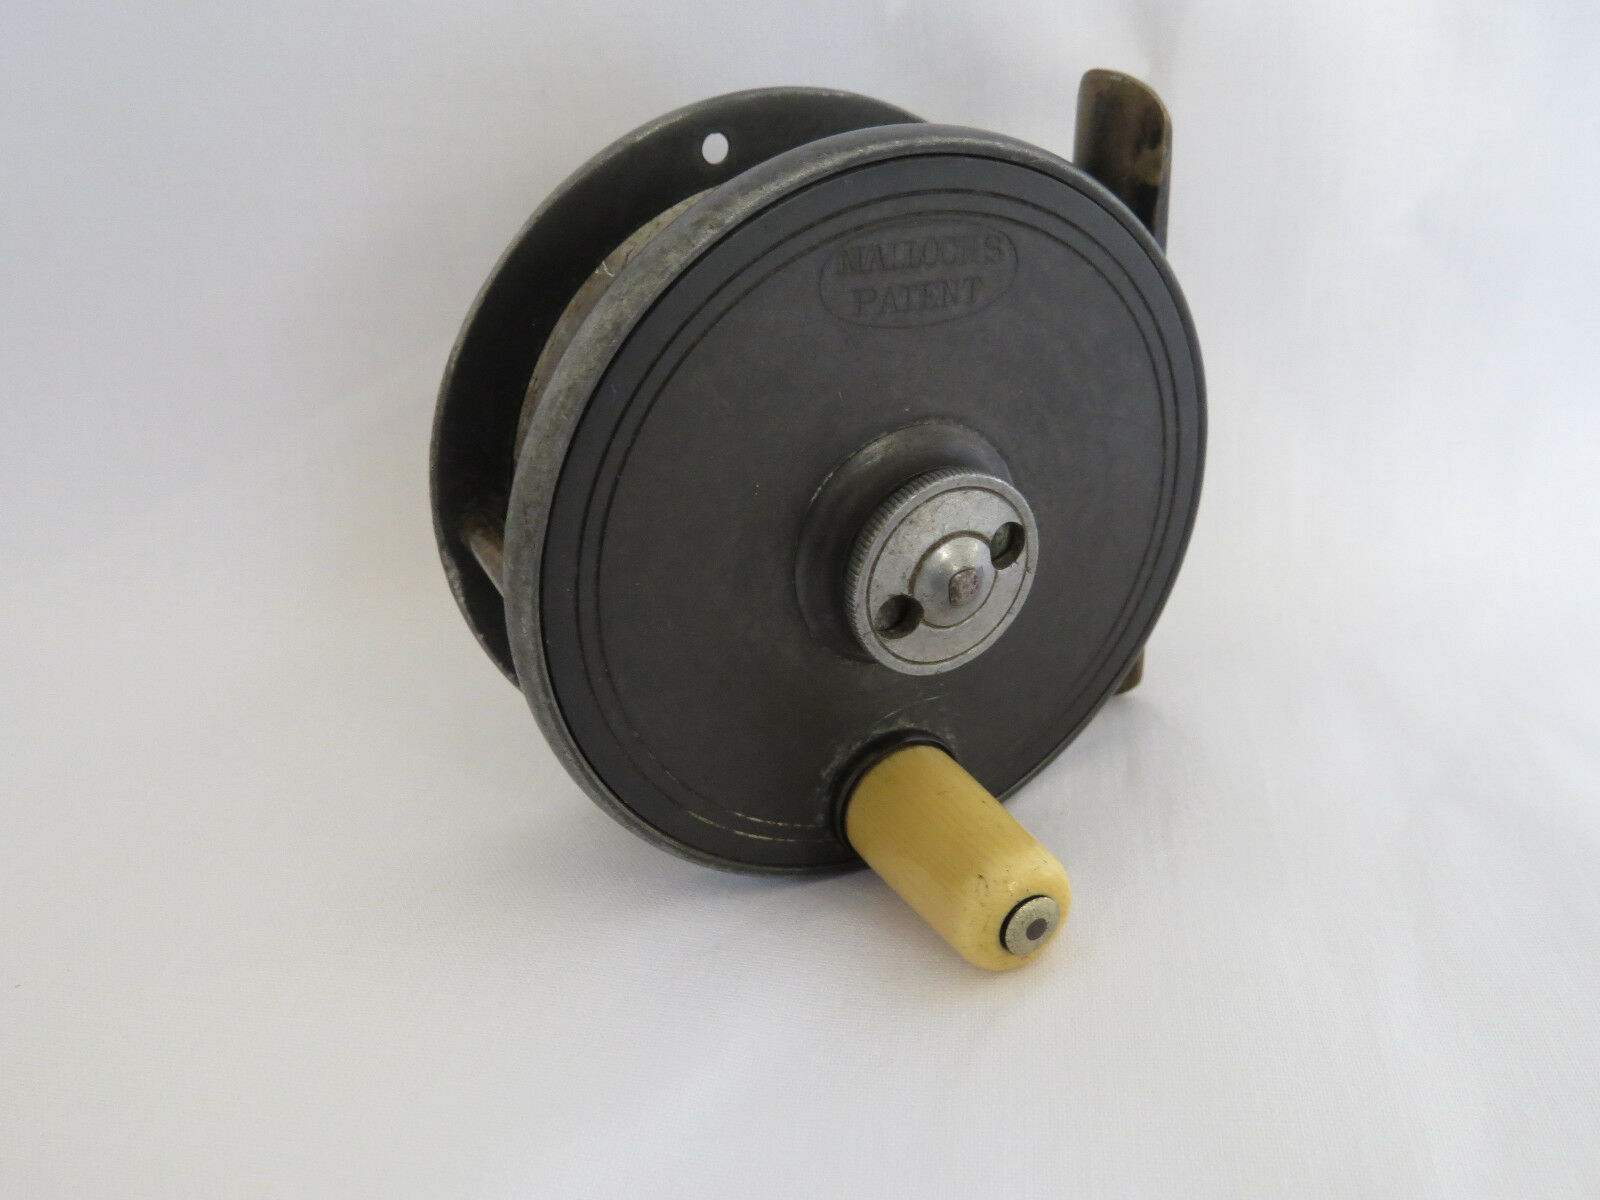 MALLOCHS  PATENT 3  CENTRE BRAKE ALLOY TROUT FLY REEL